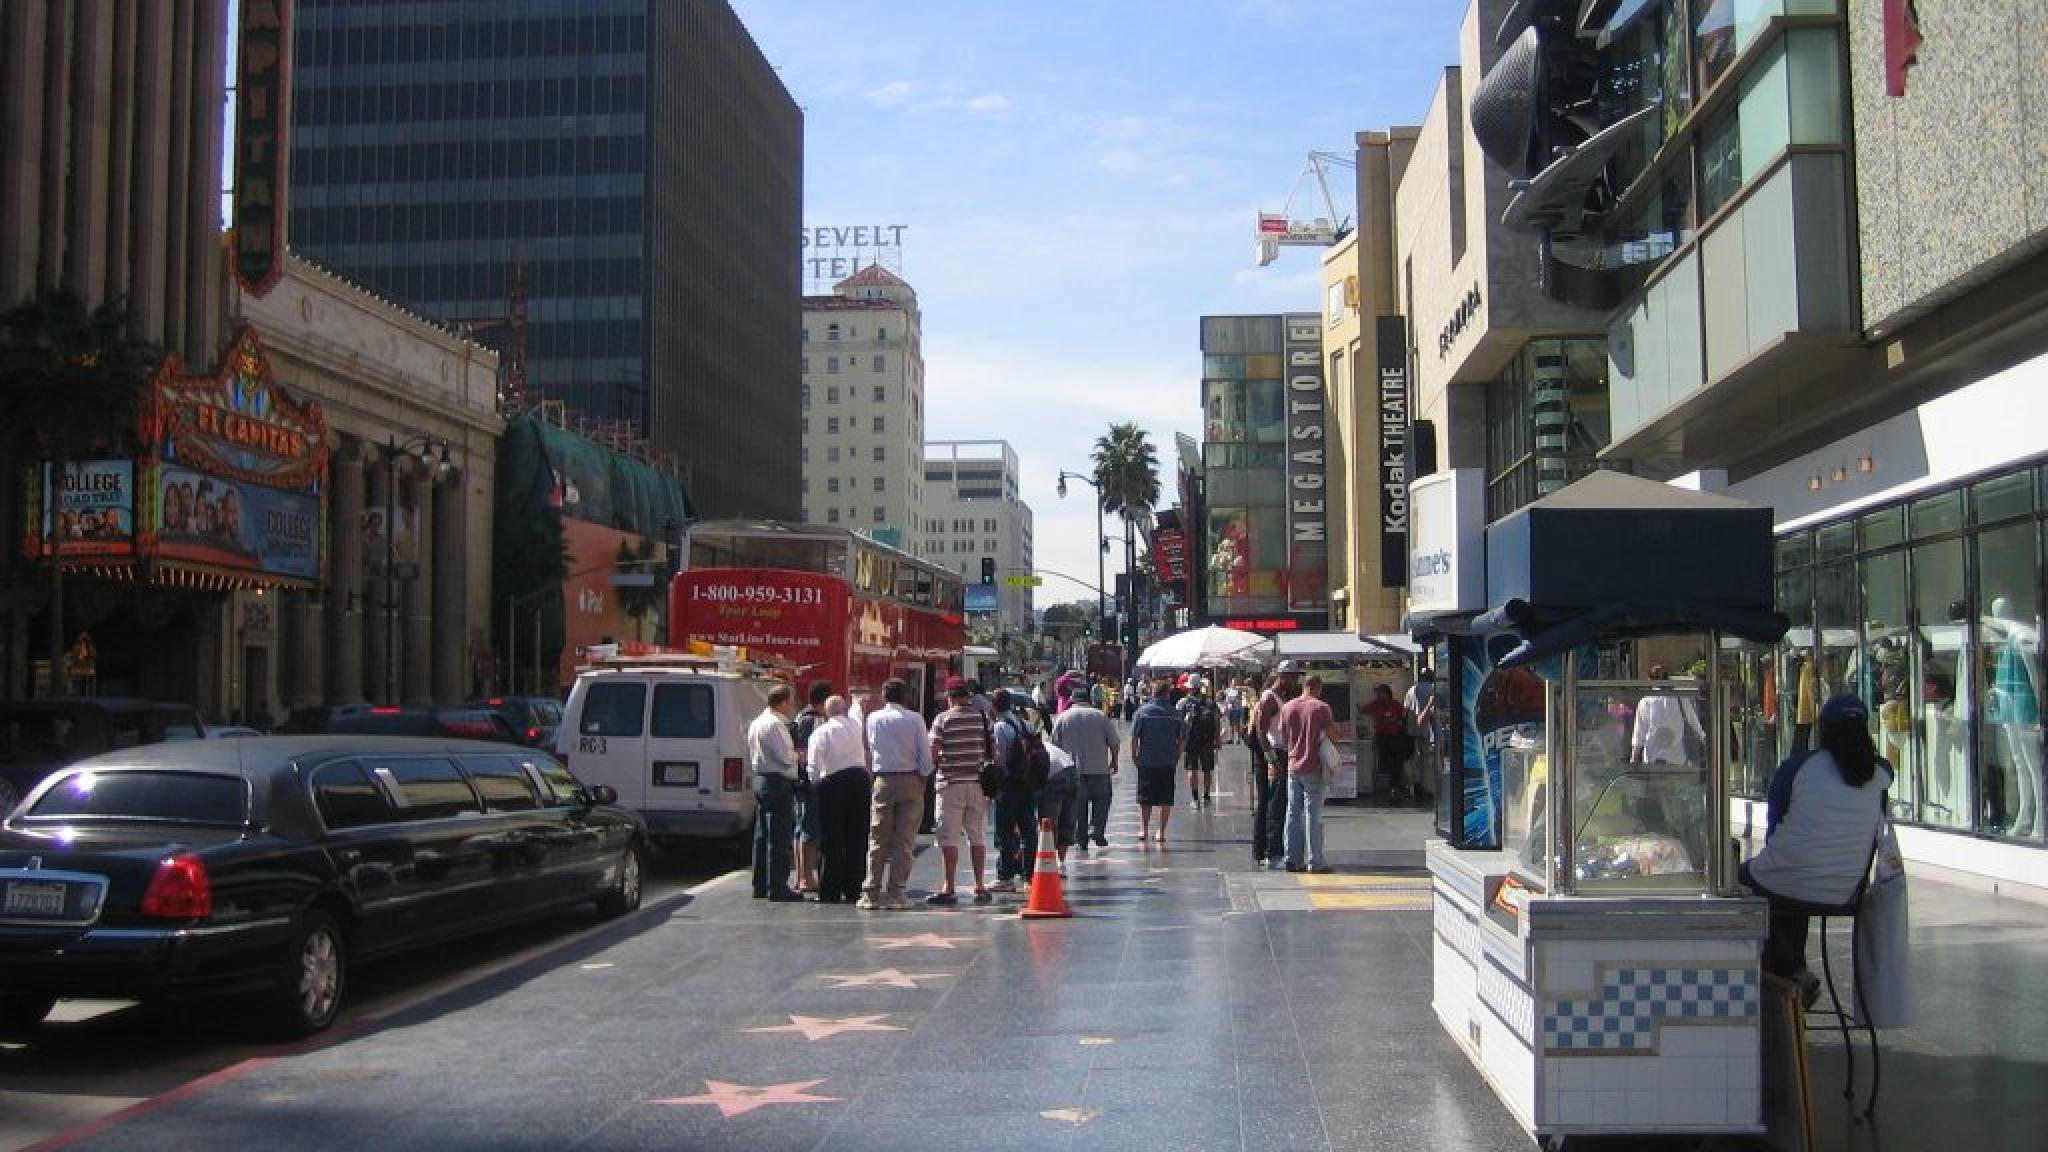 hollywood boulevard los angeles   United States  USA Pictures HD Wallpaper